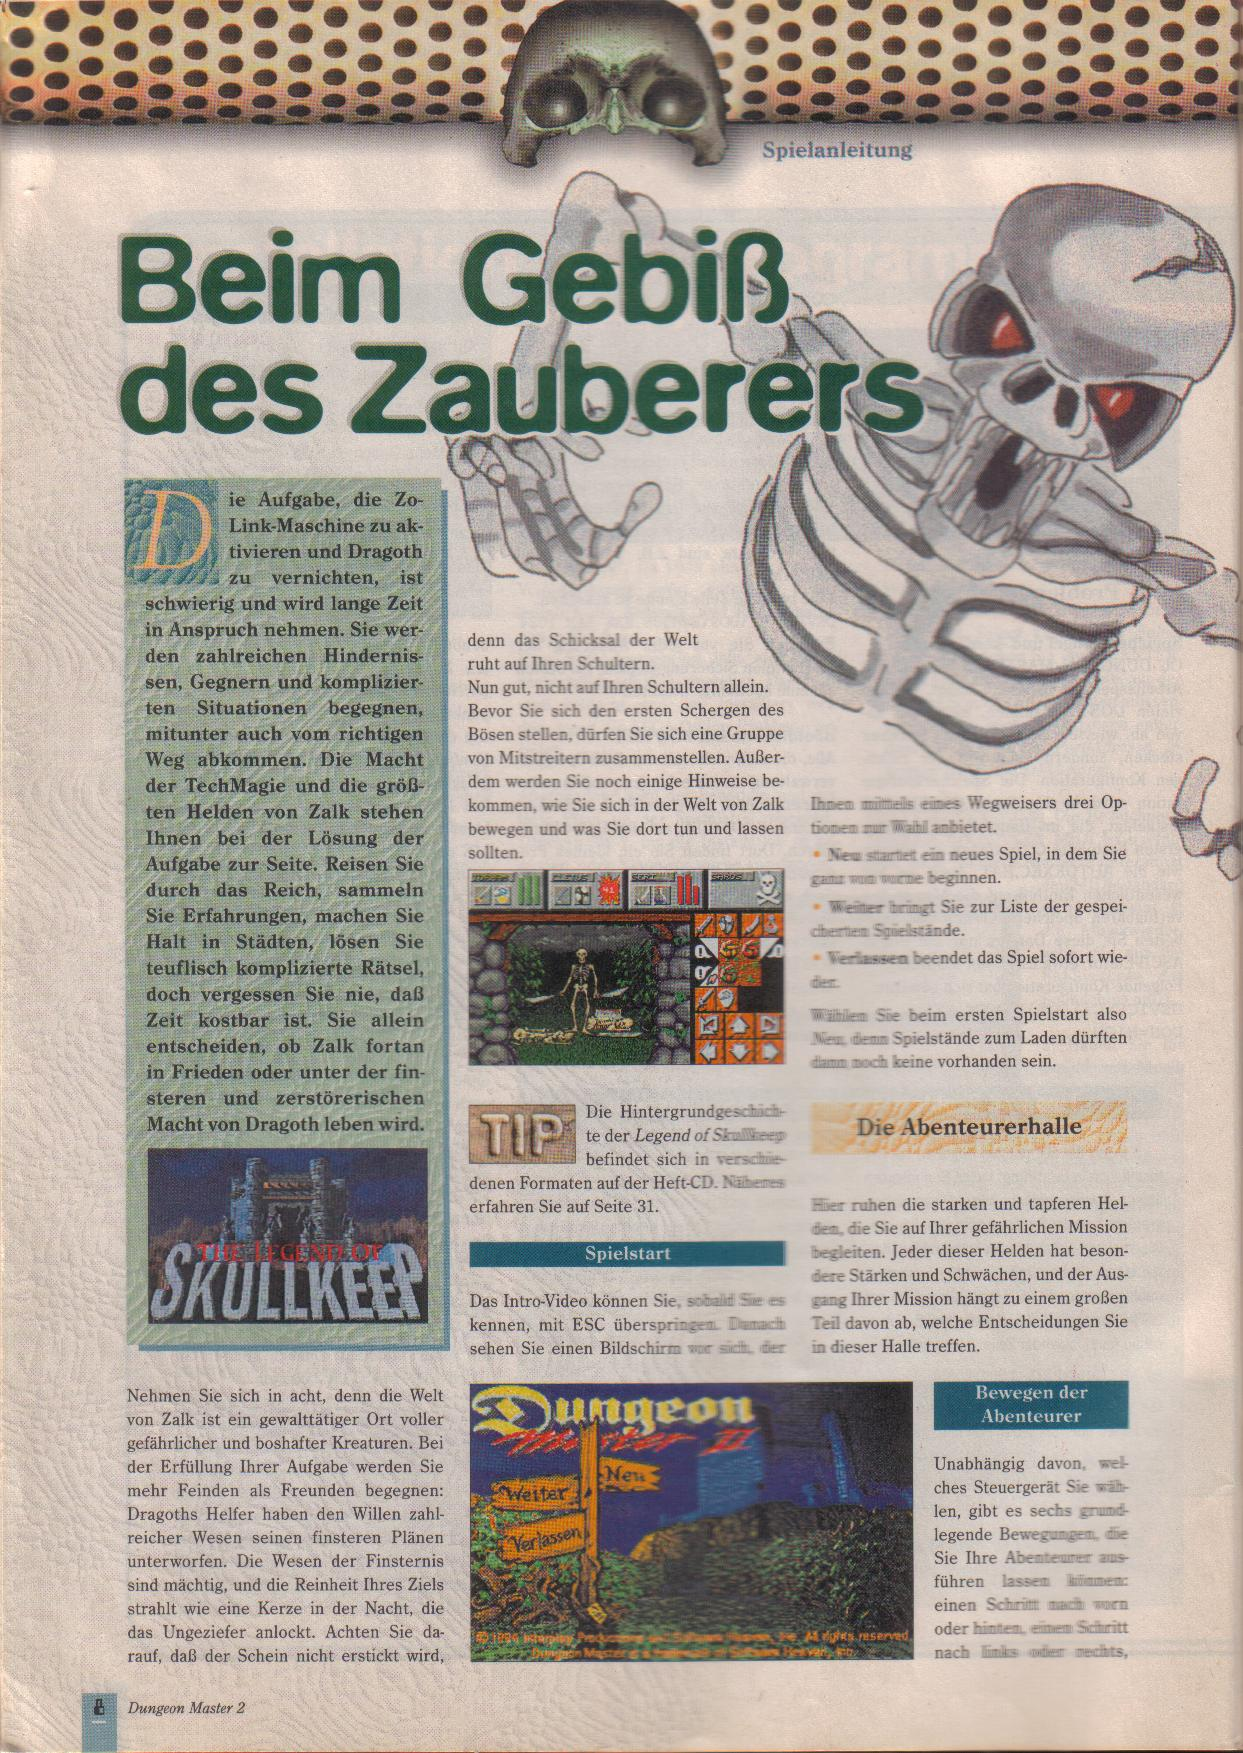 Dungeon Master II for PC (German, Best Seller Games) Page 8